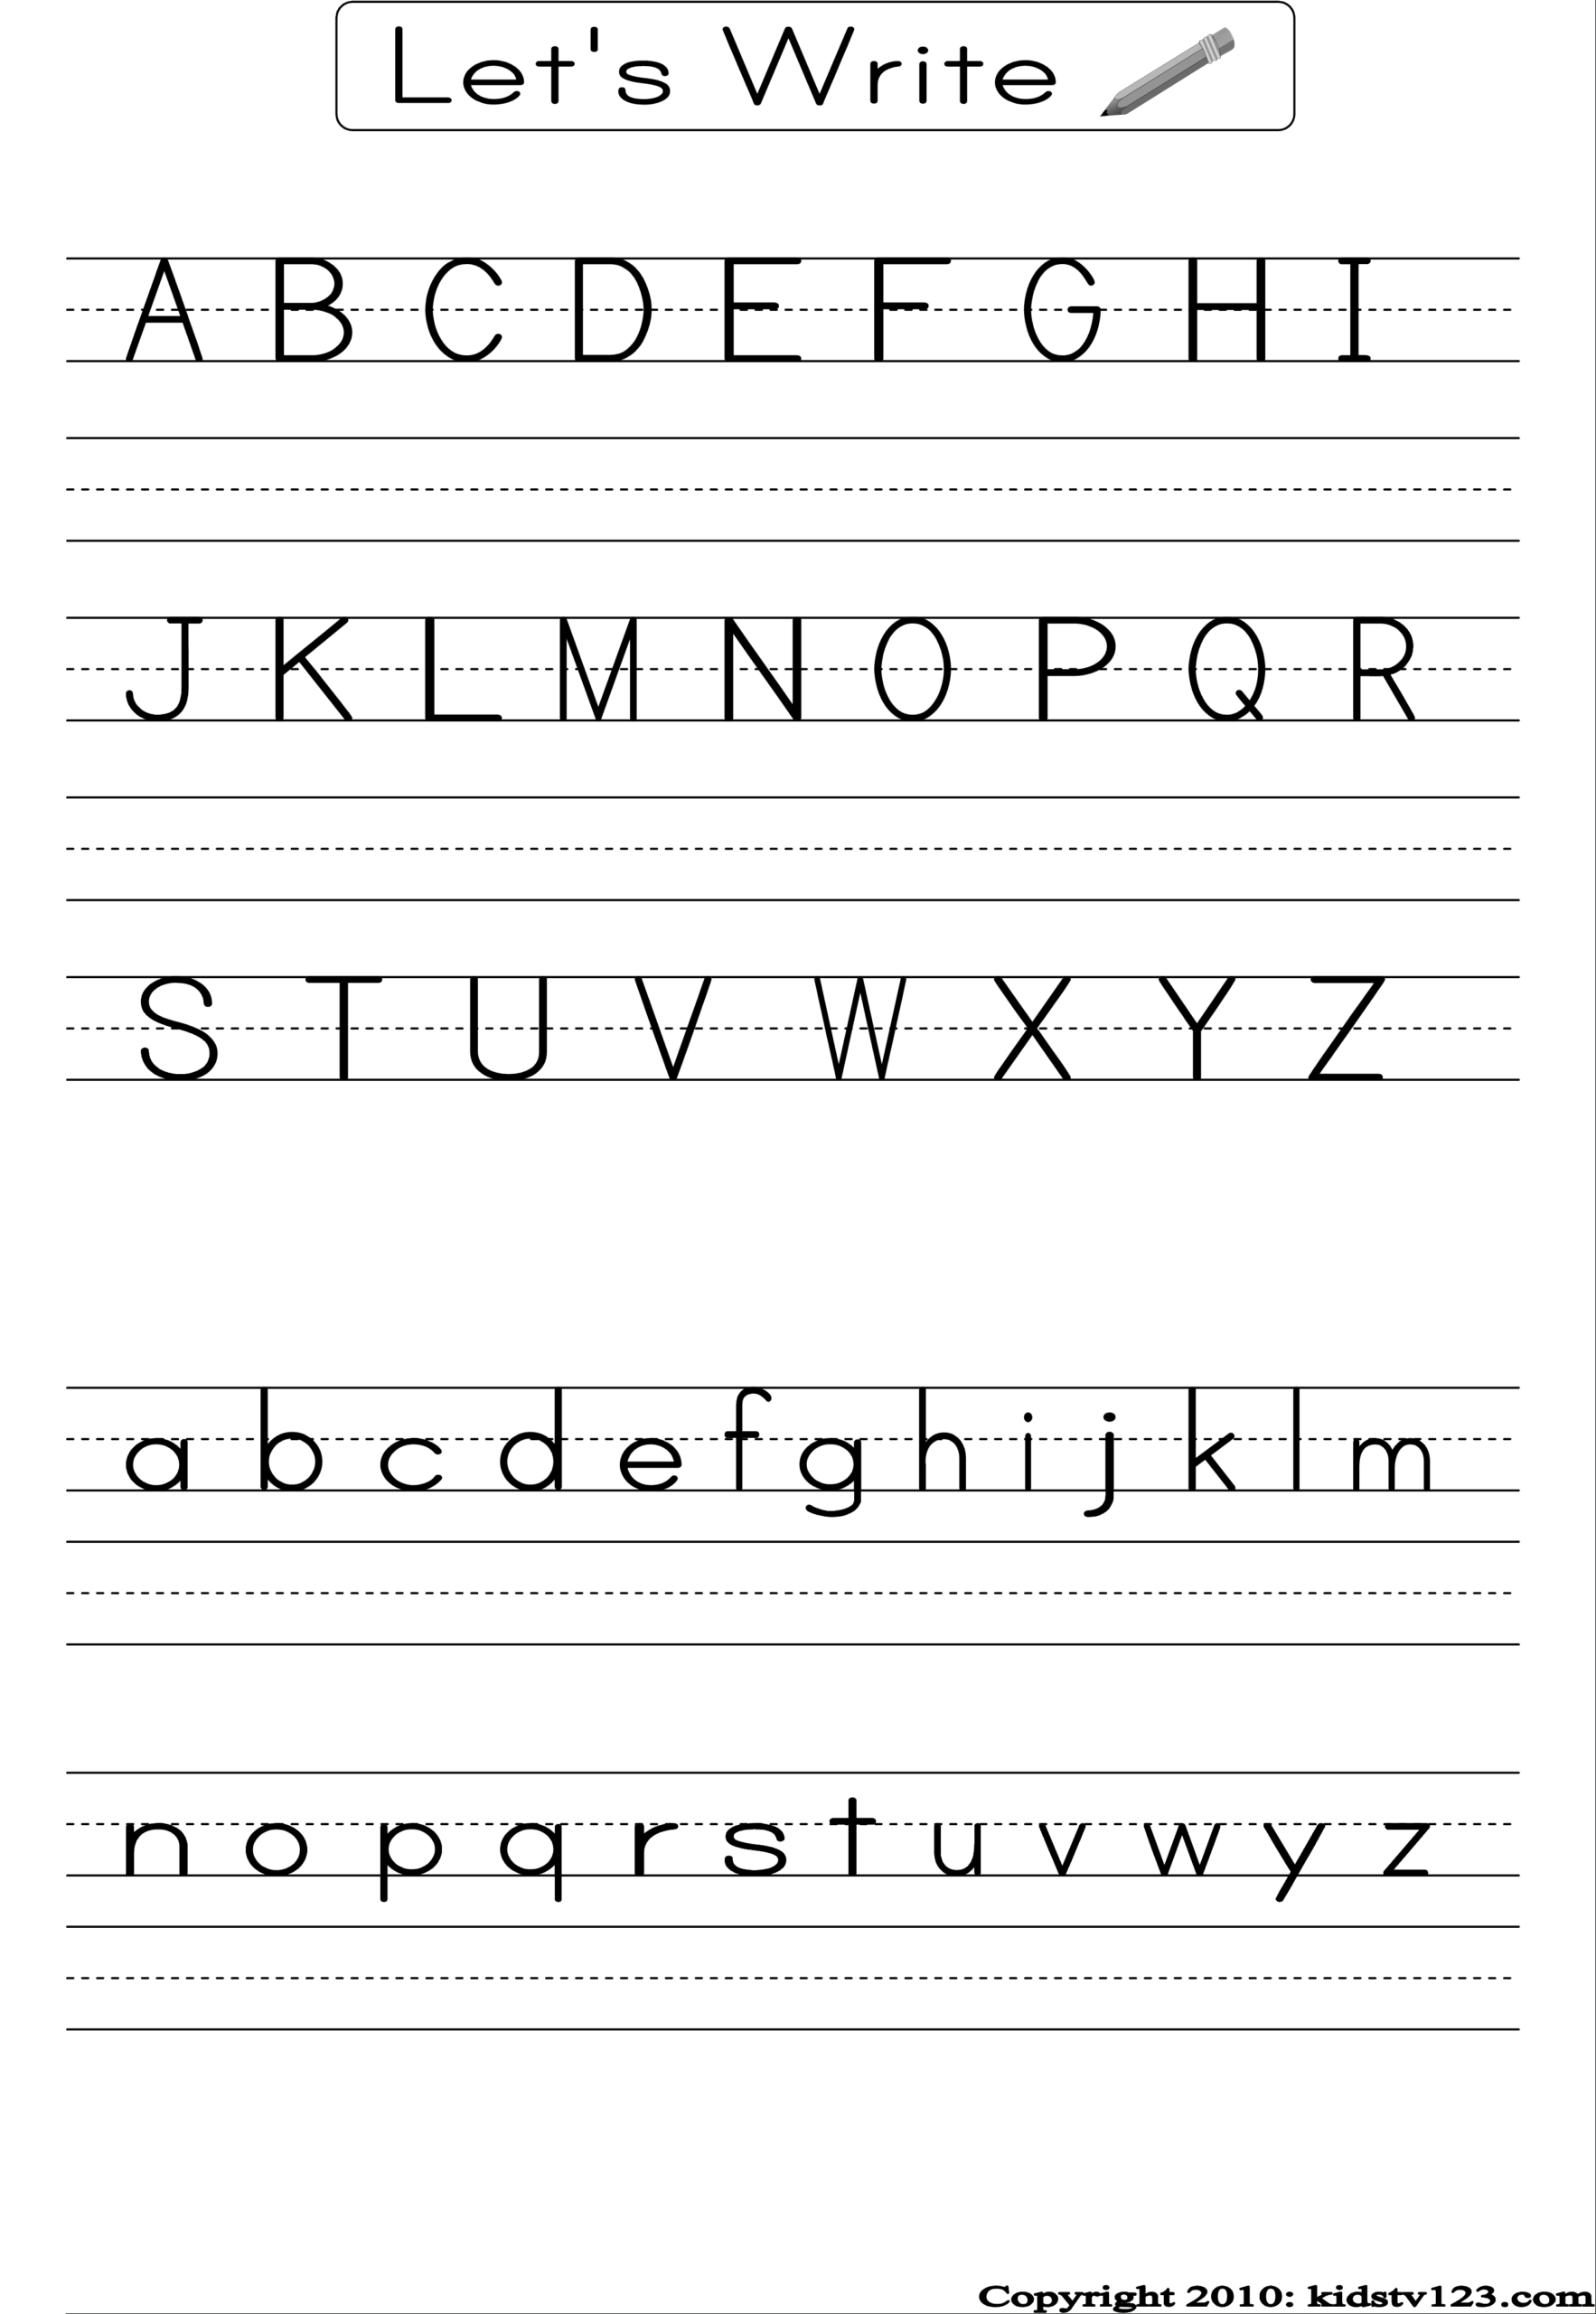 Alphabet Writing Practice Sheet | Alphabet Writing Practice intended for Alphabet Tracing Handout